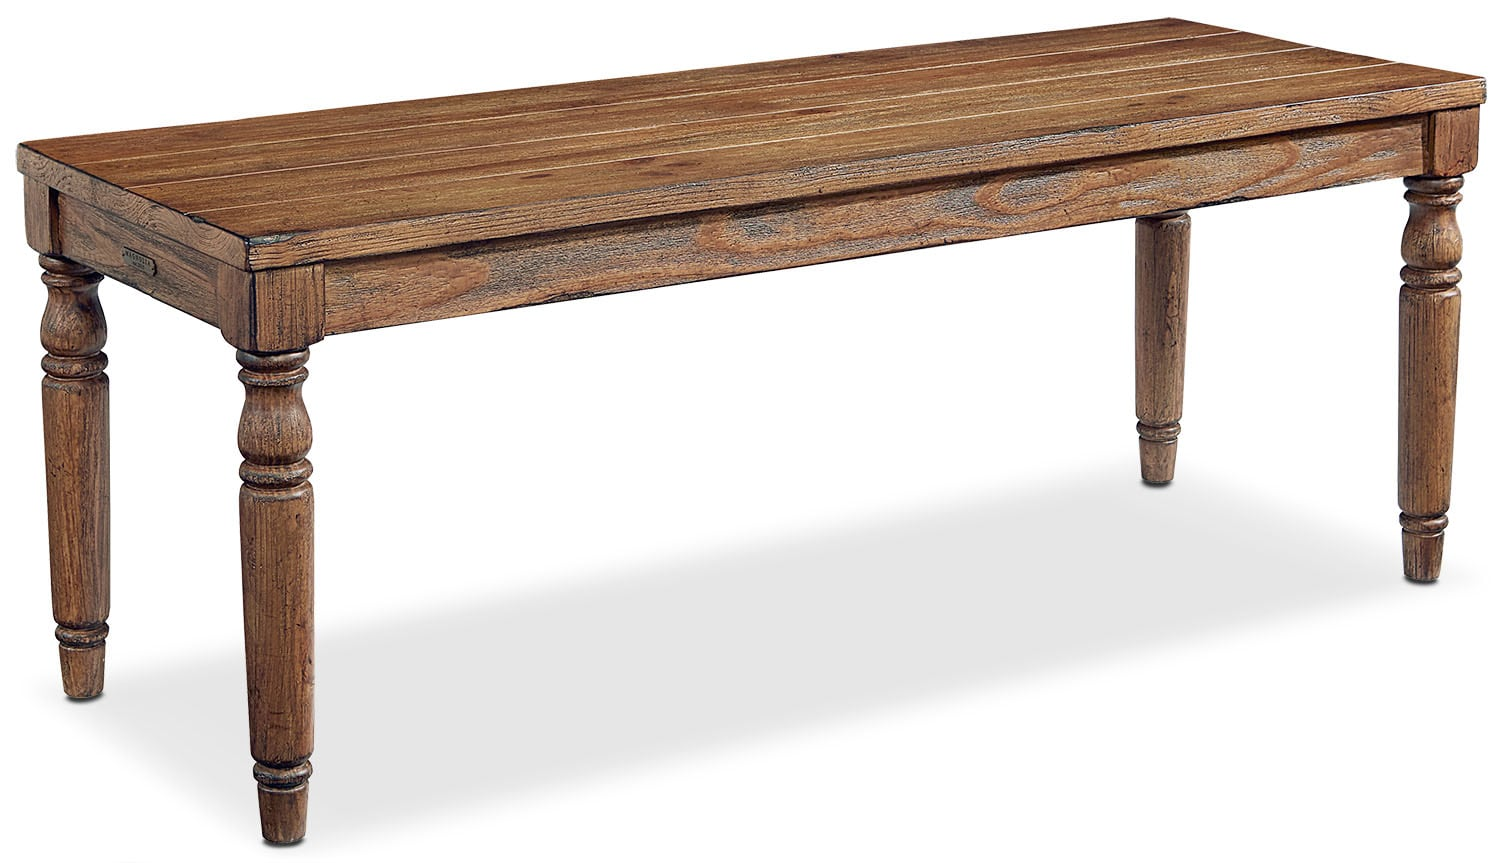 Dining Room Furniture - Primitive Taper Turned Bench - Bench